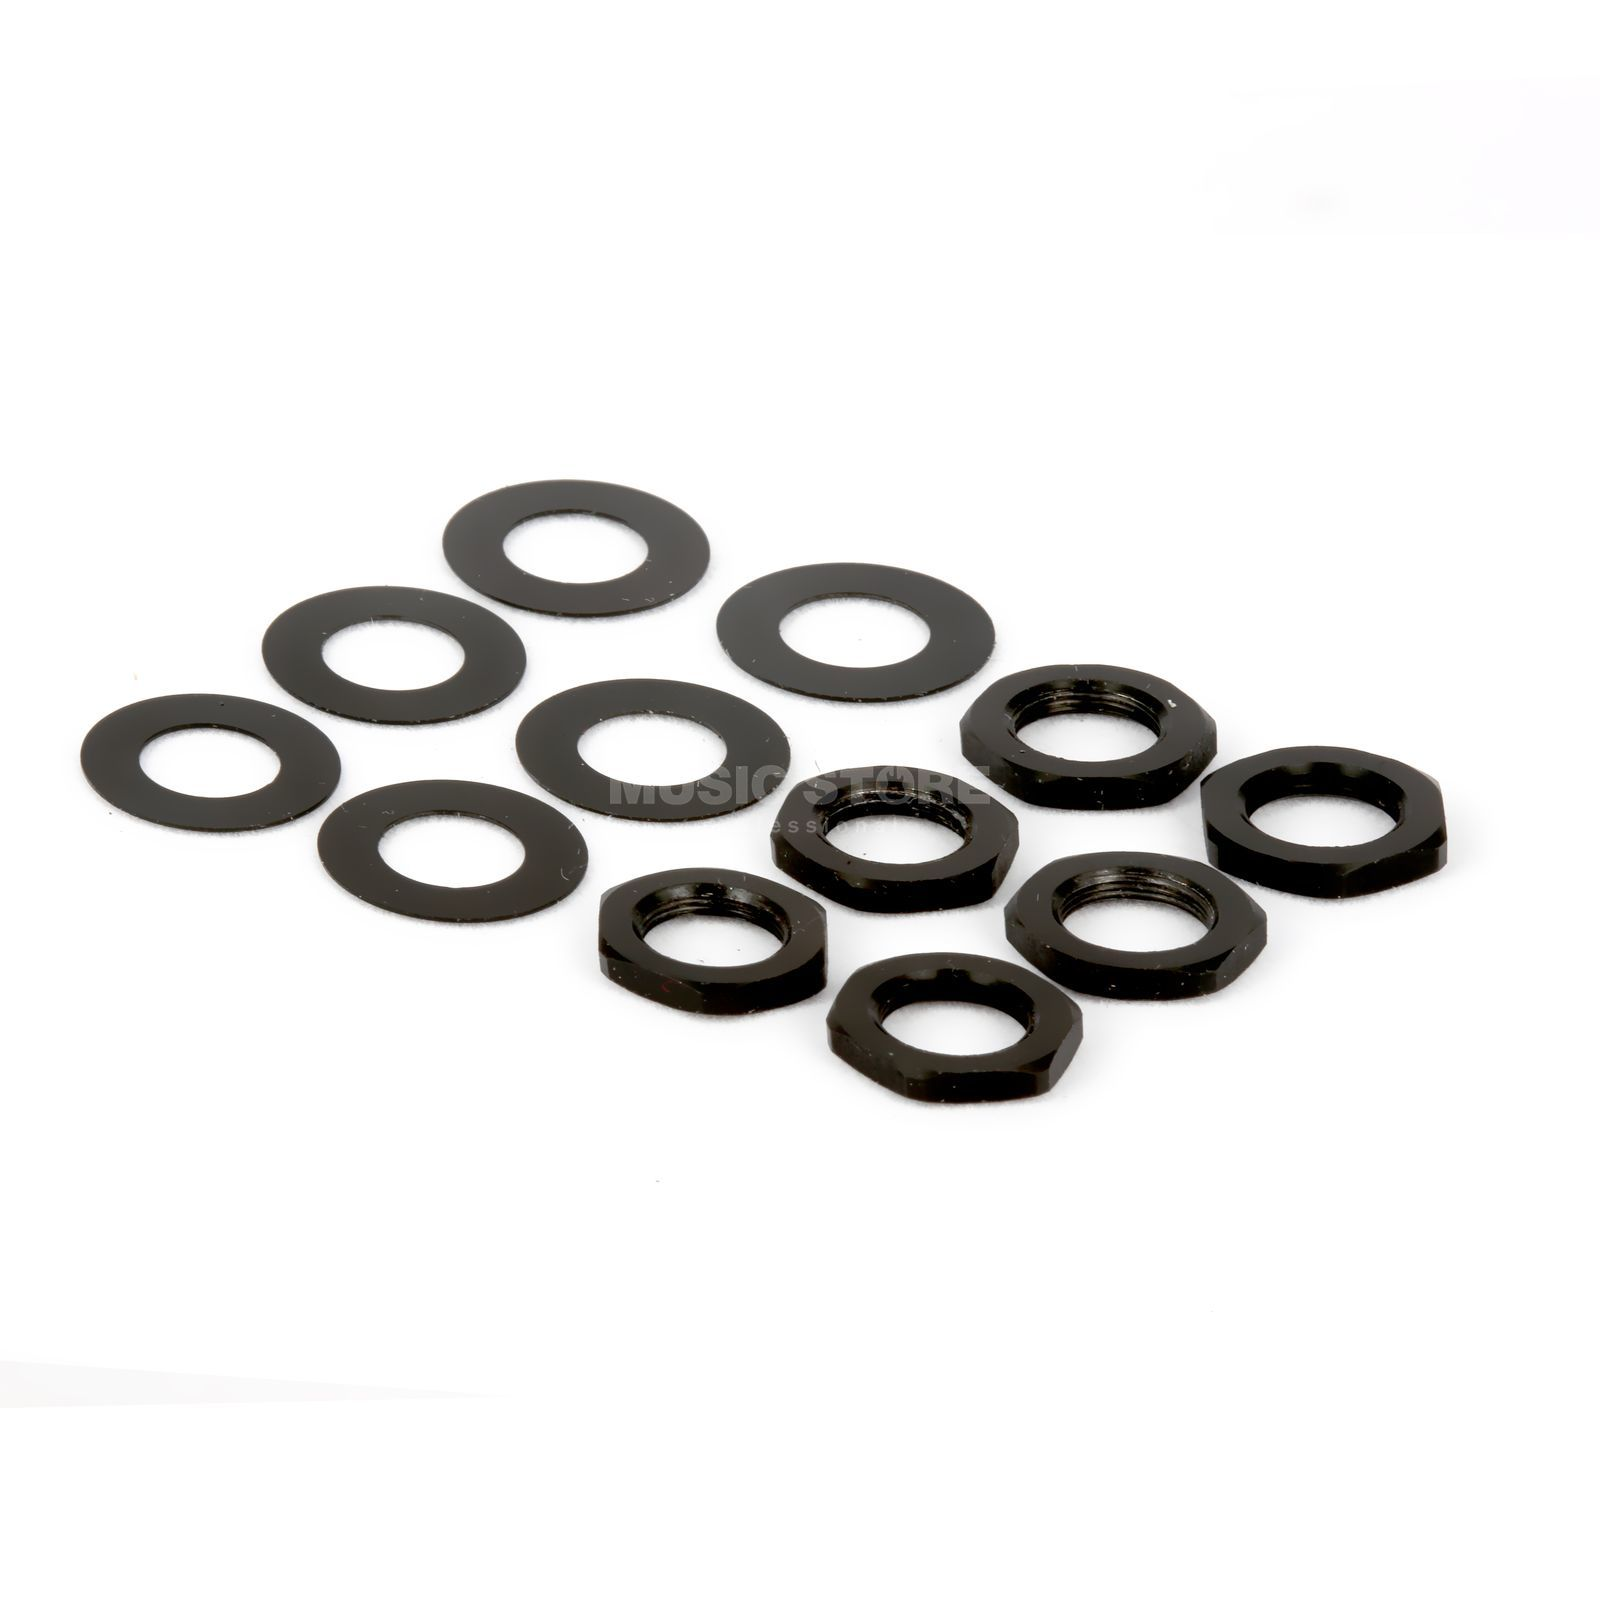 Tronical GmbH Hex Nut & Washer Black Produktbild